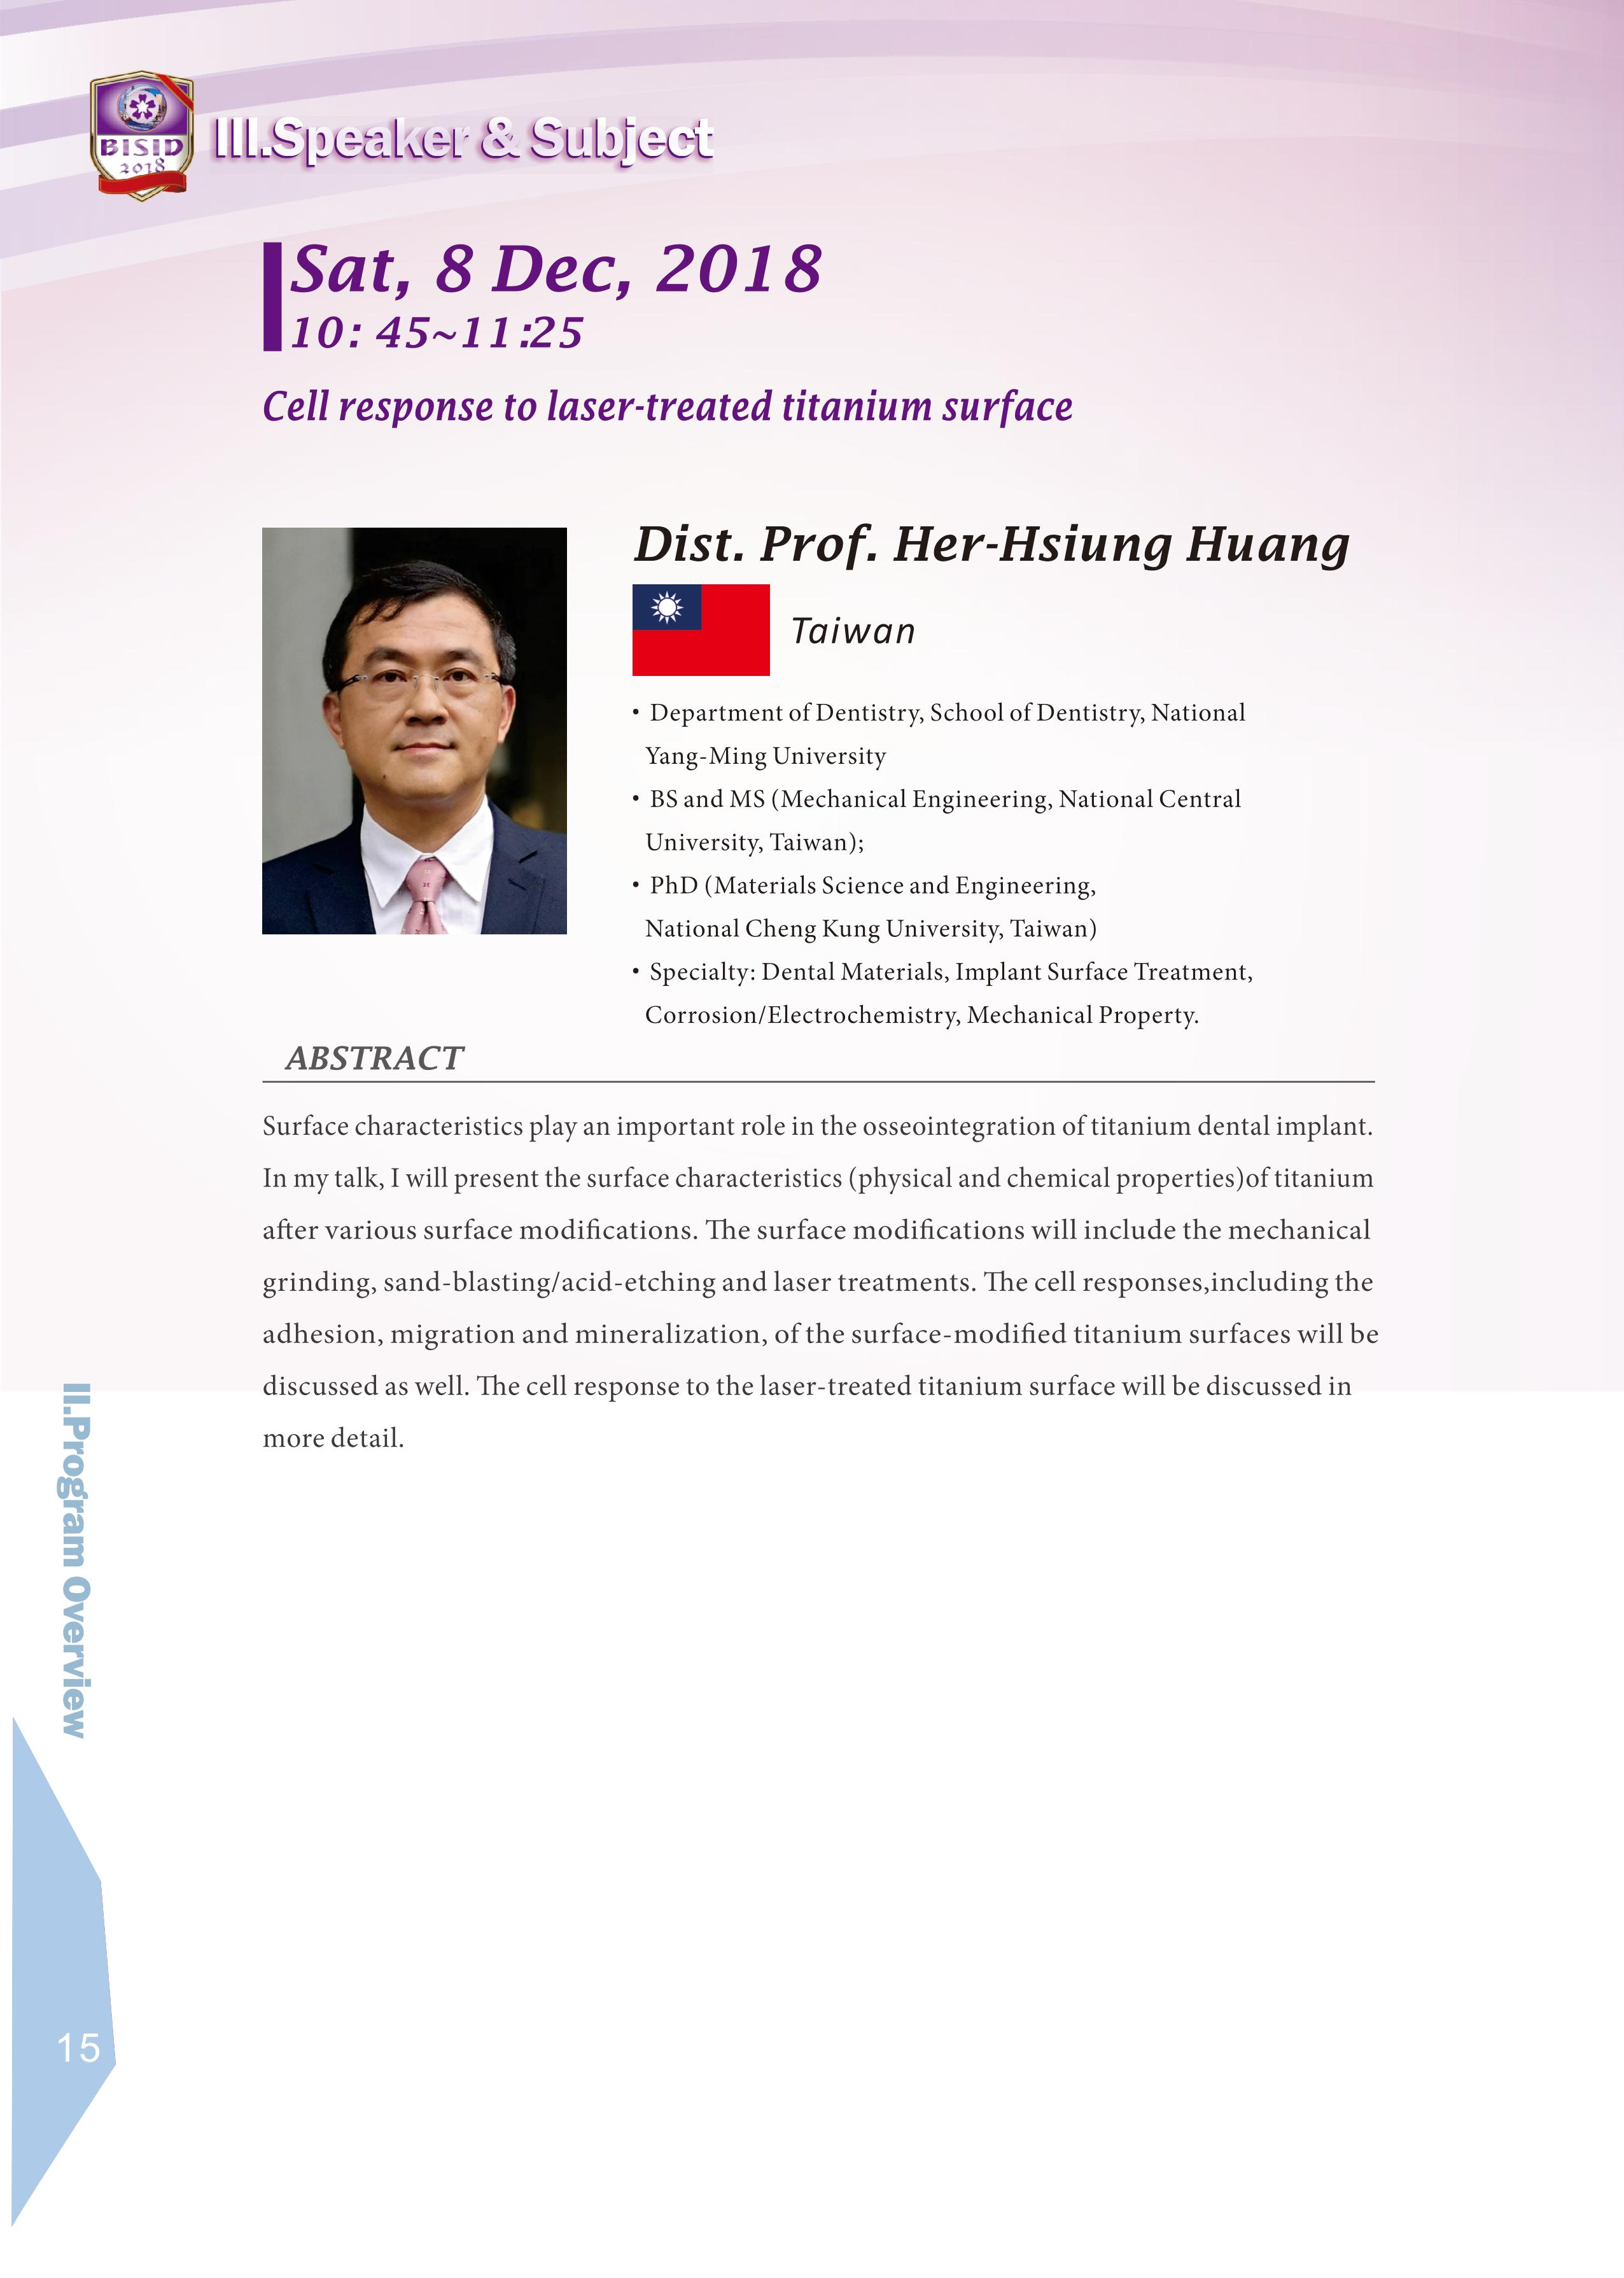 Biomate Internation Symposium of Implant Dentistry-Dist.Prof.Her-Hsiung Huang